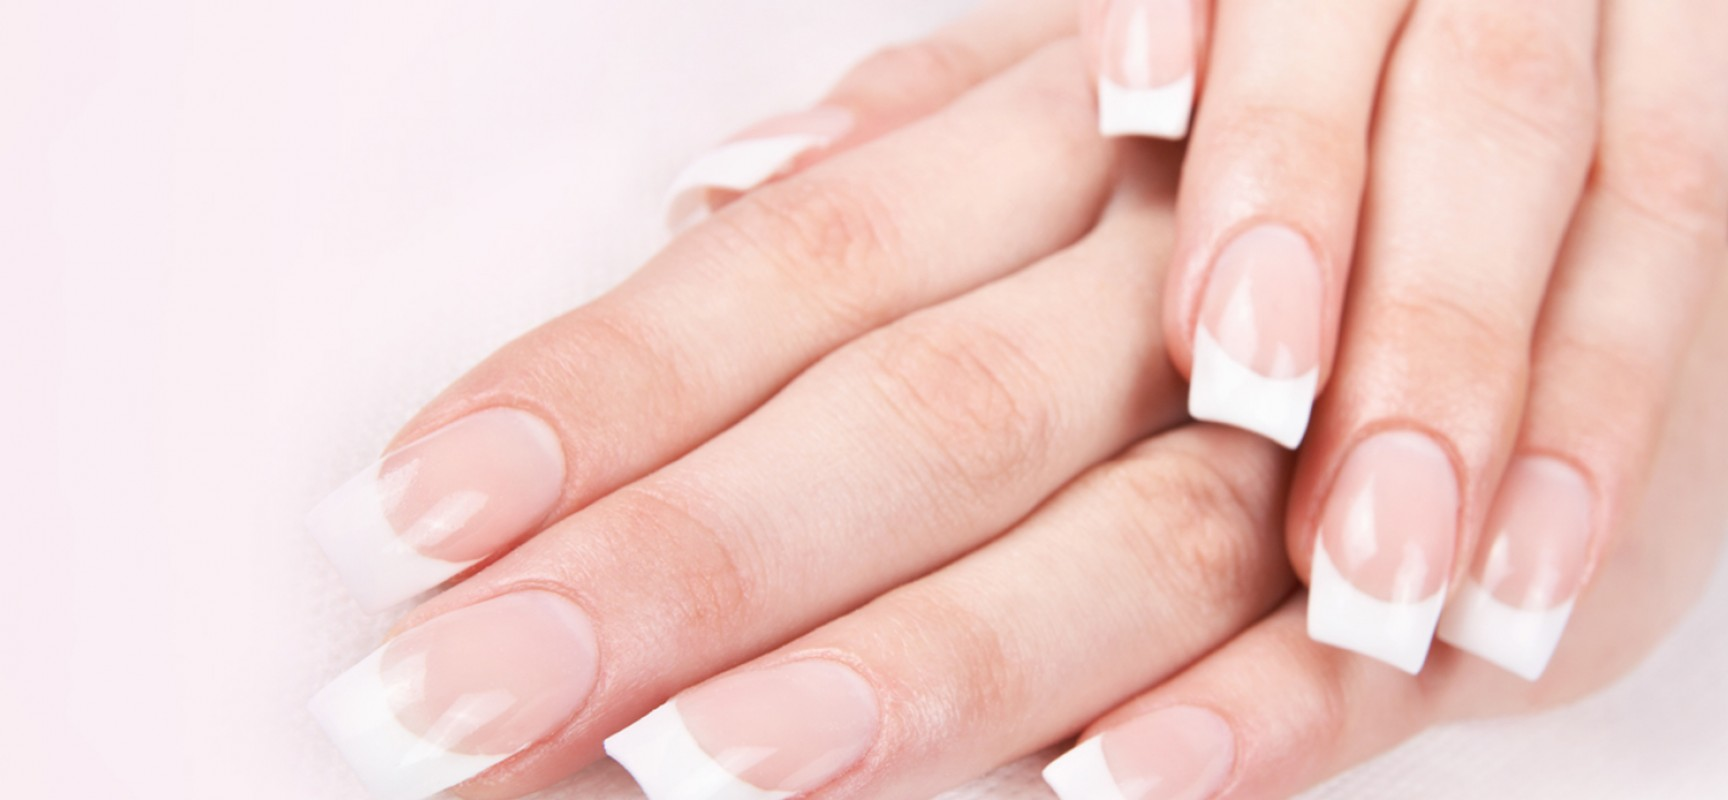 Facts You Should Know About Nail Fungus | inreads